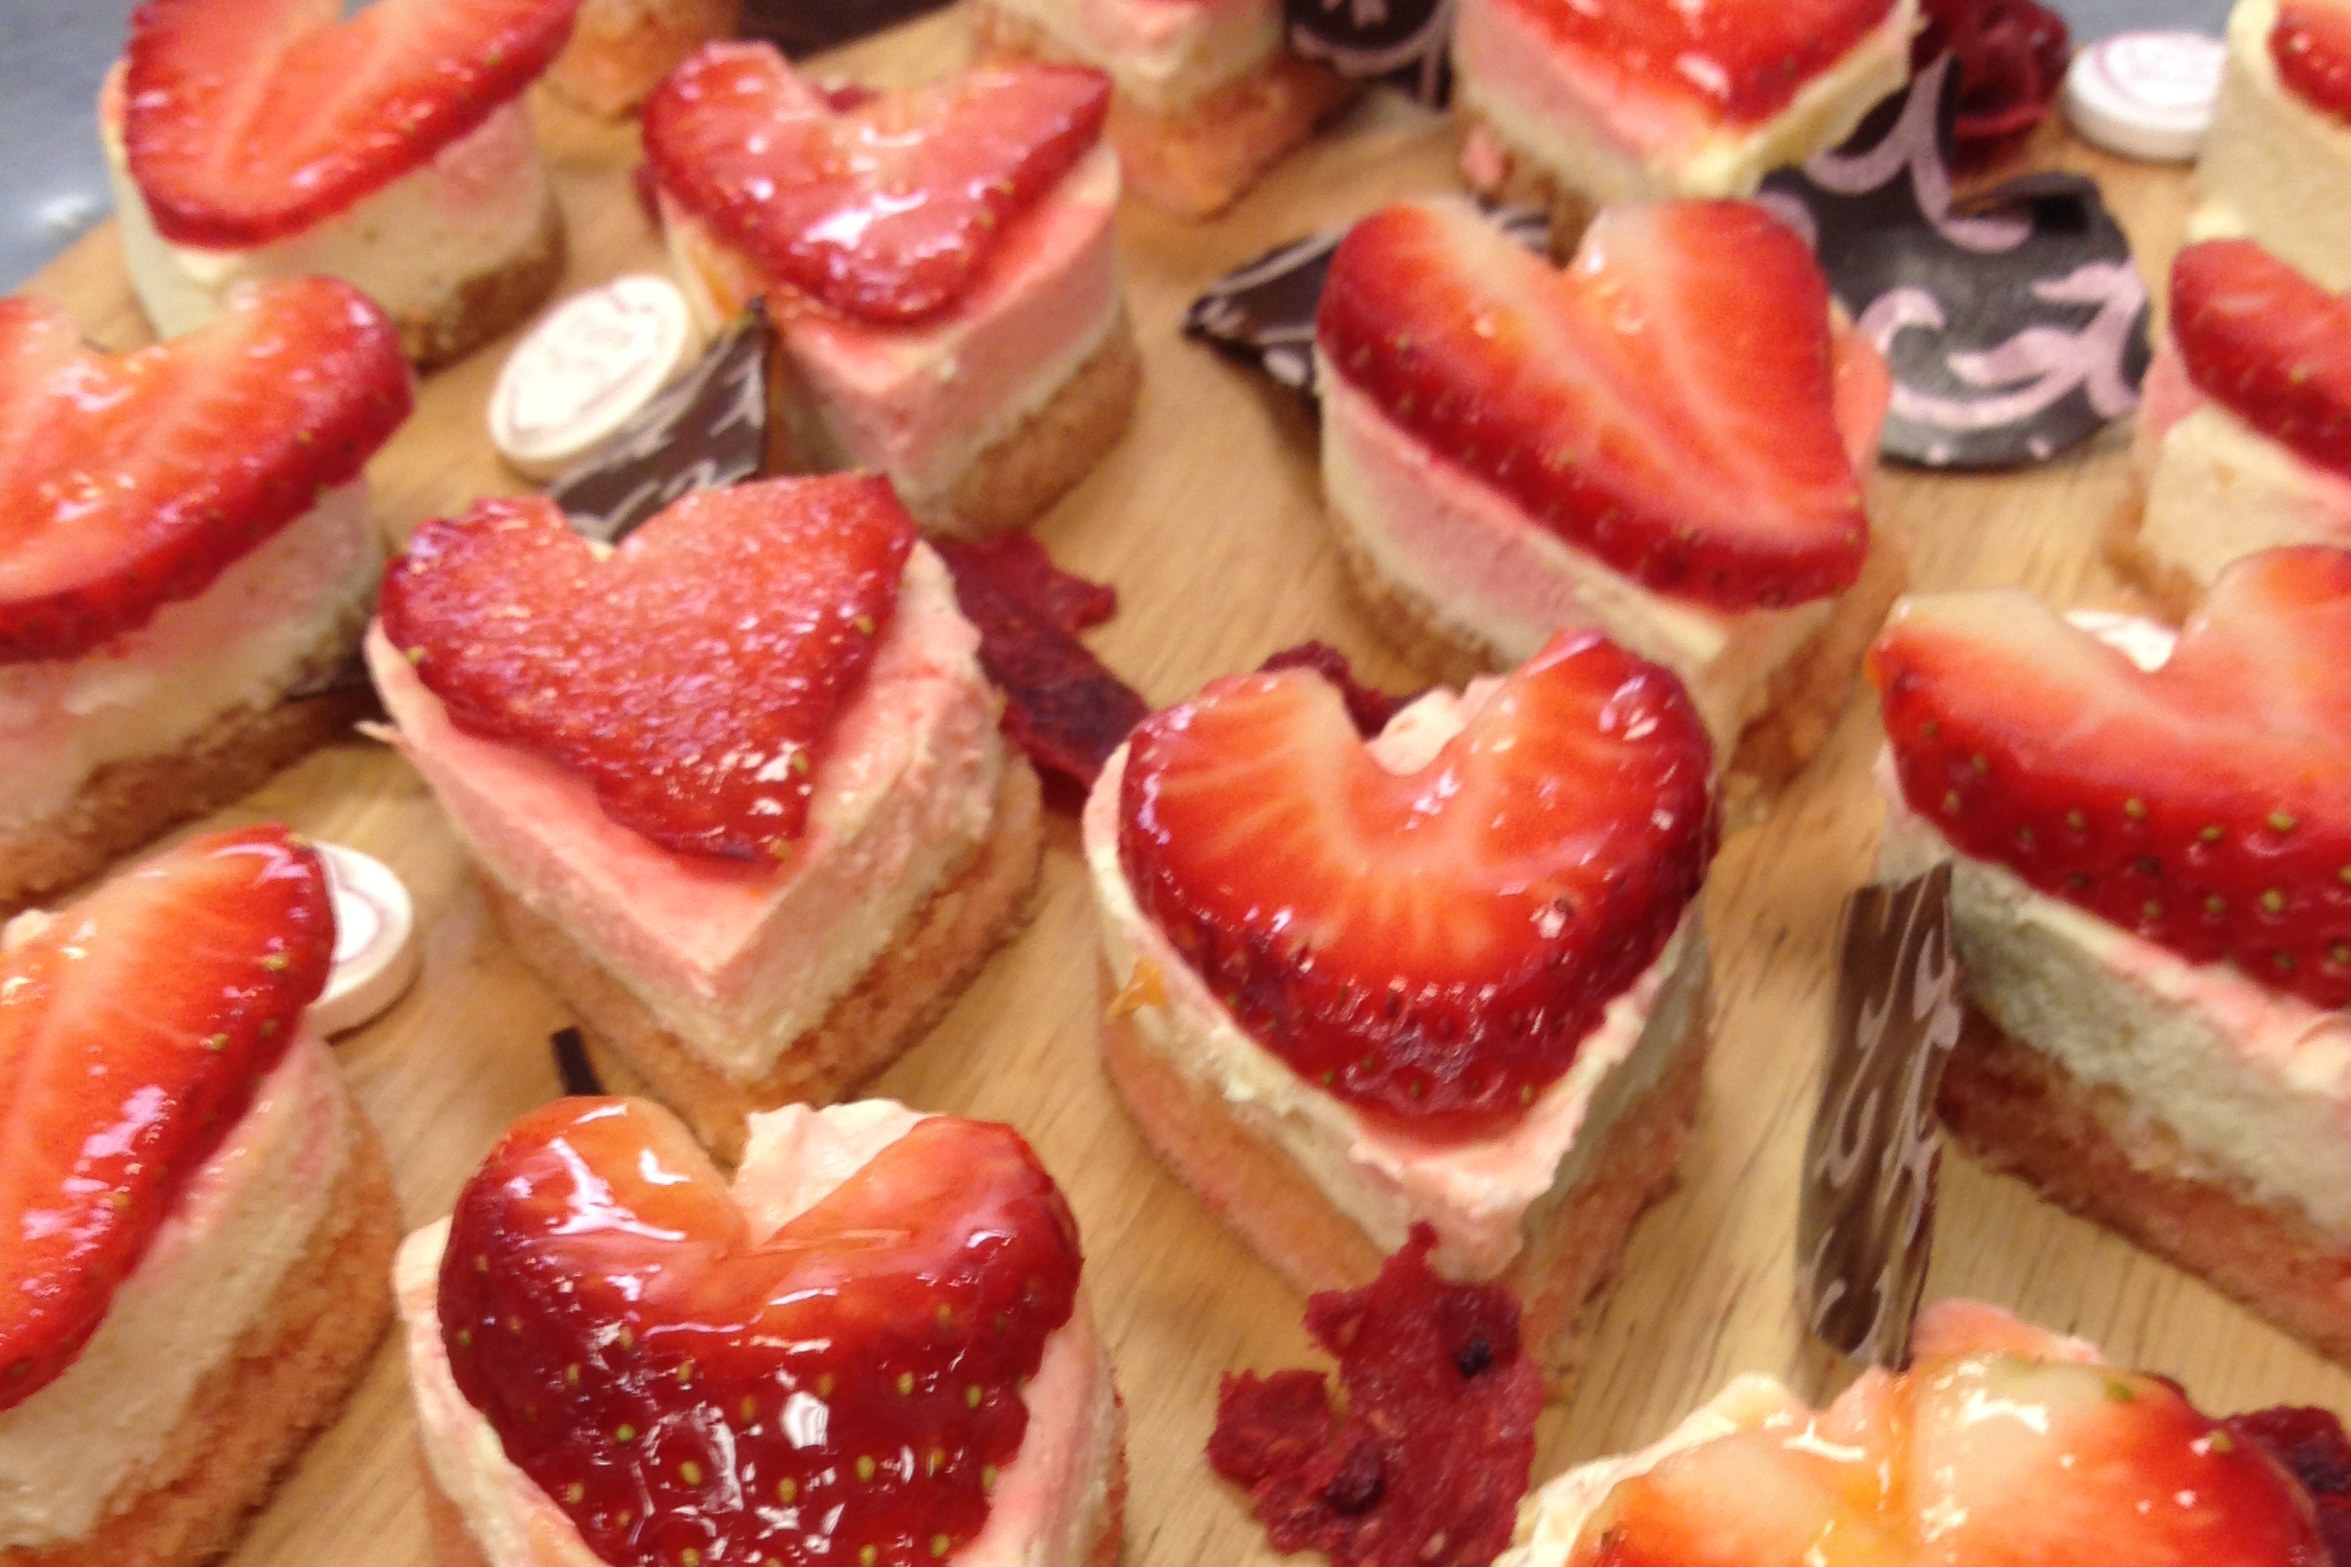 Strawberry heart cheesecakes handmade by PJ taste chefs